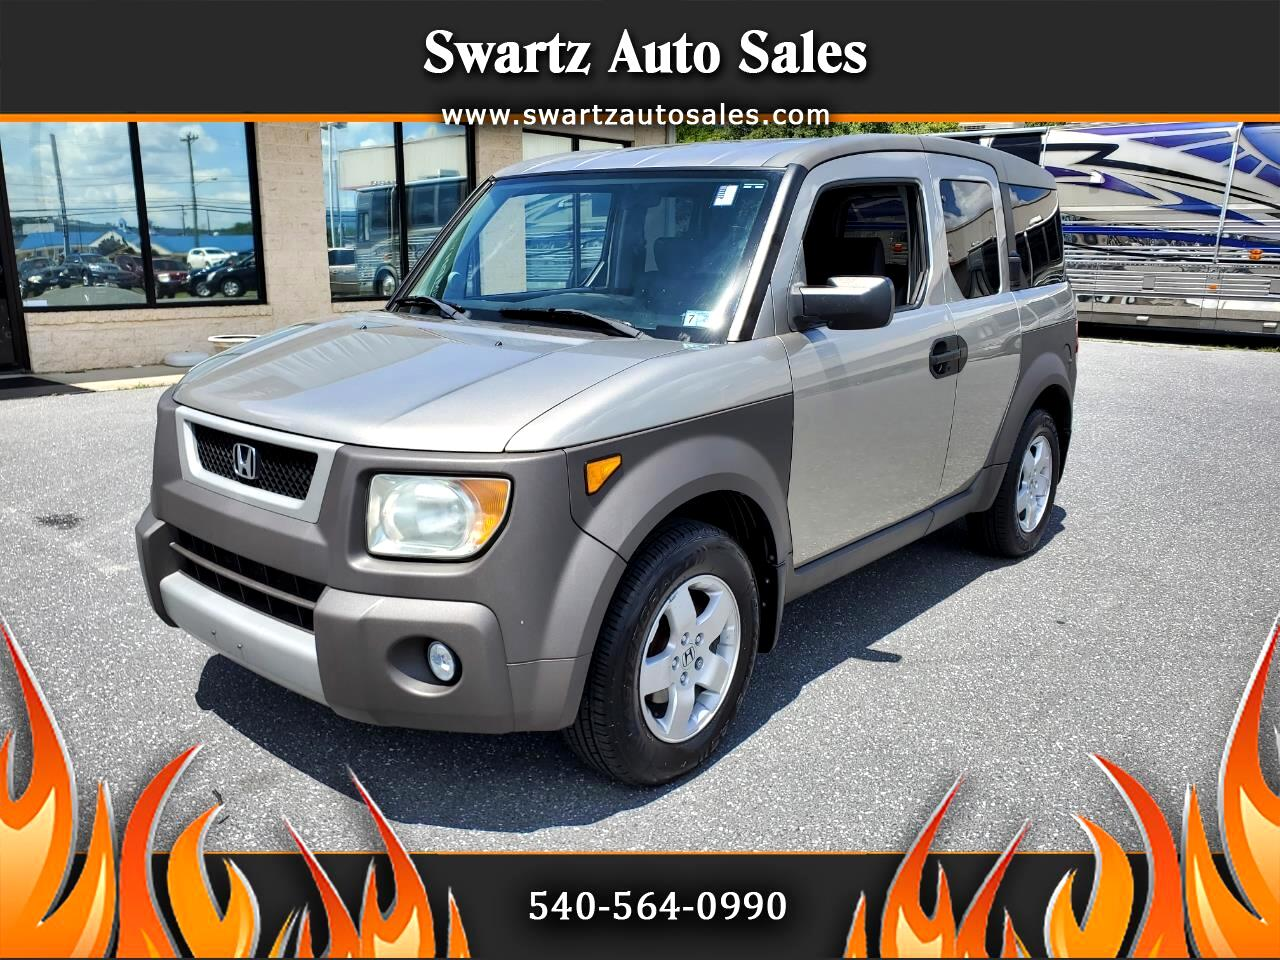 2003 Honda Element 2WD EX Manual